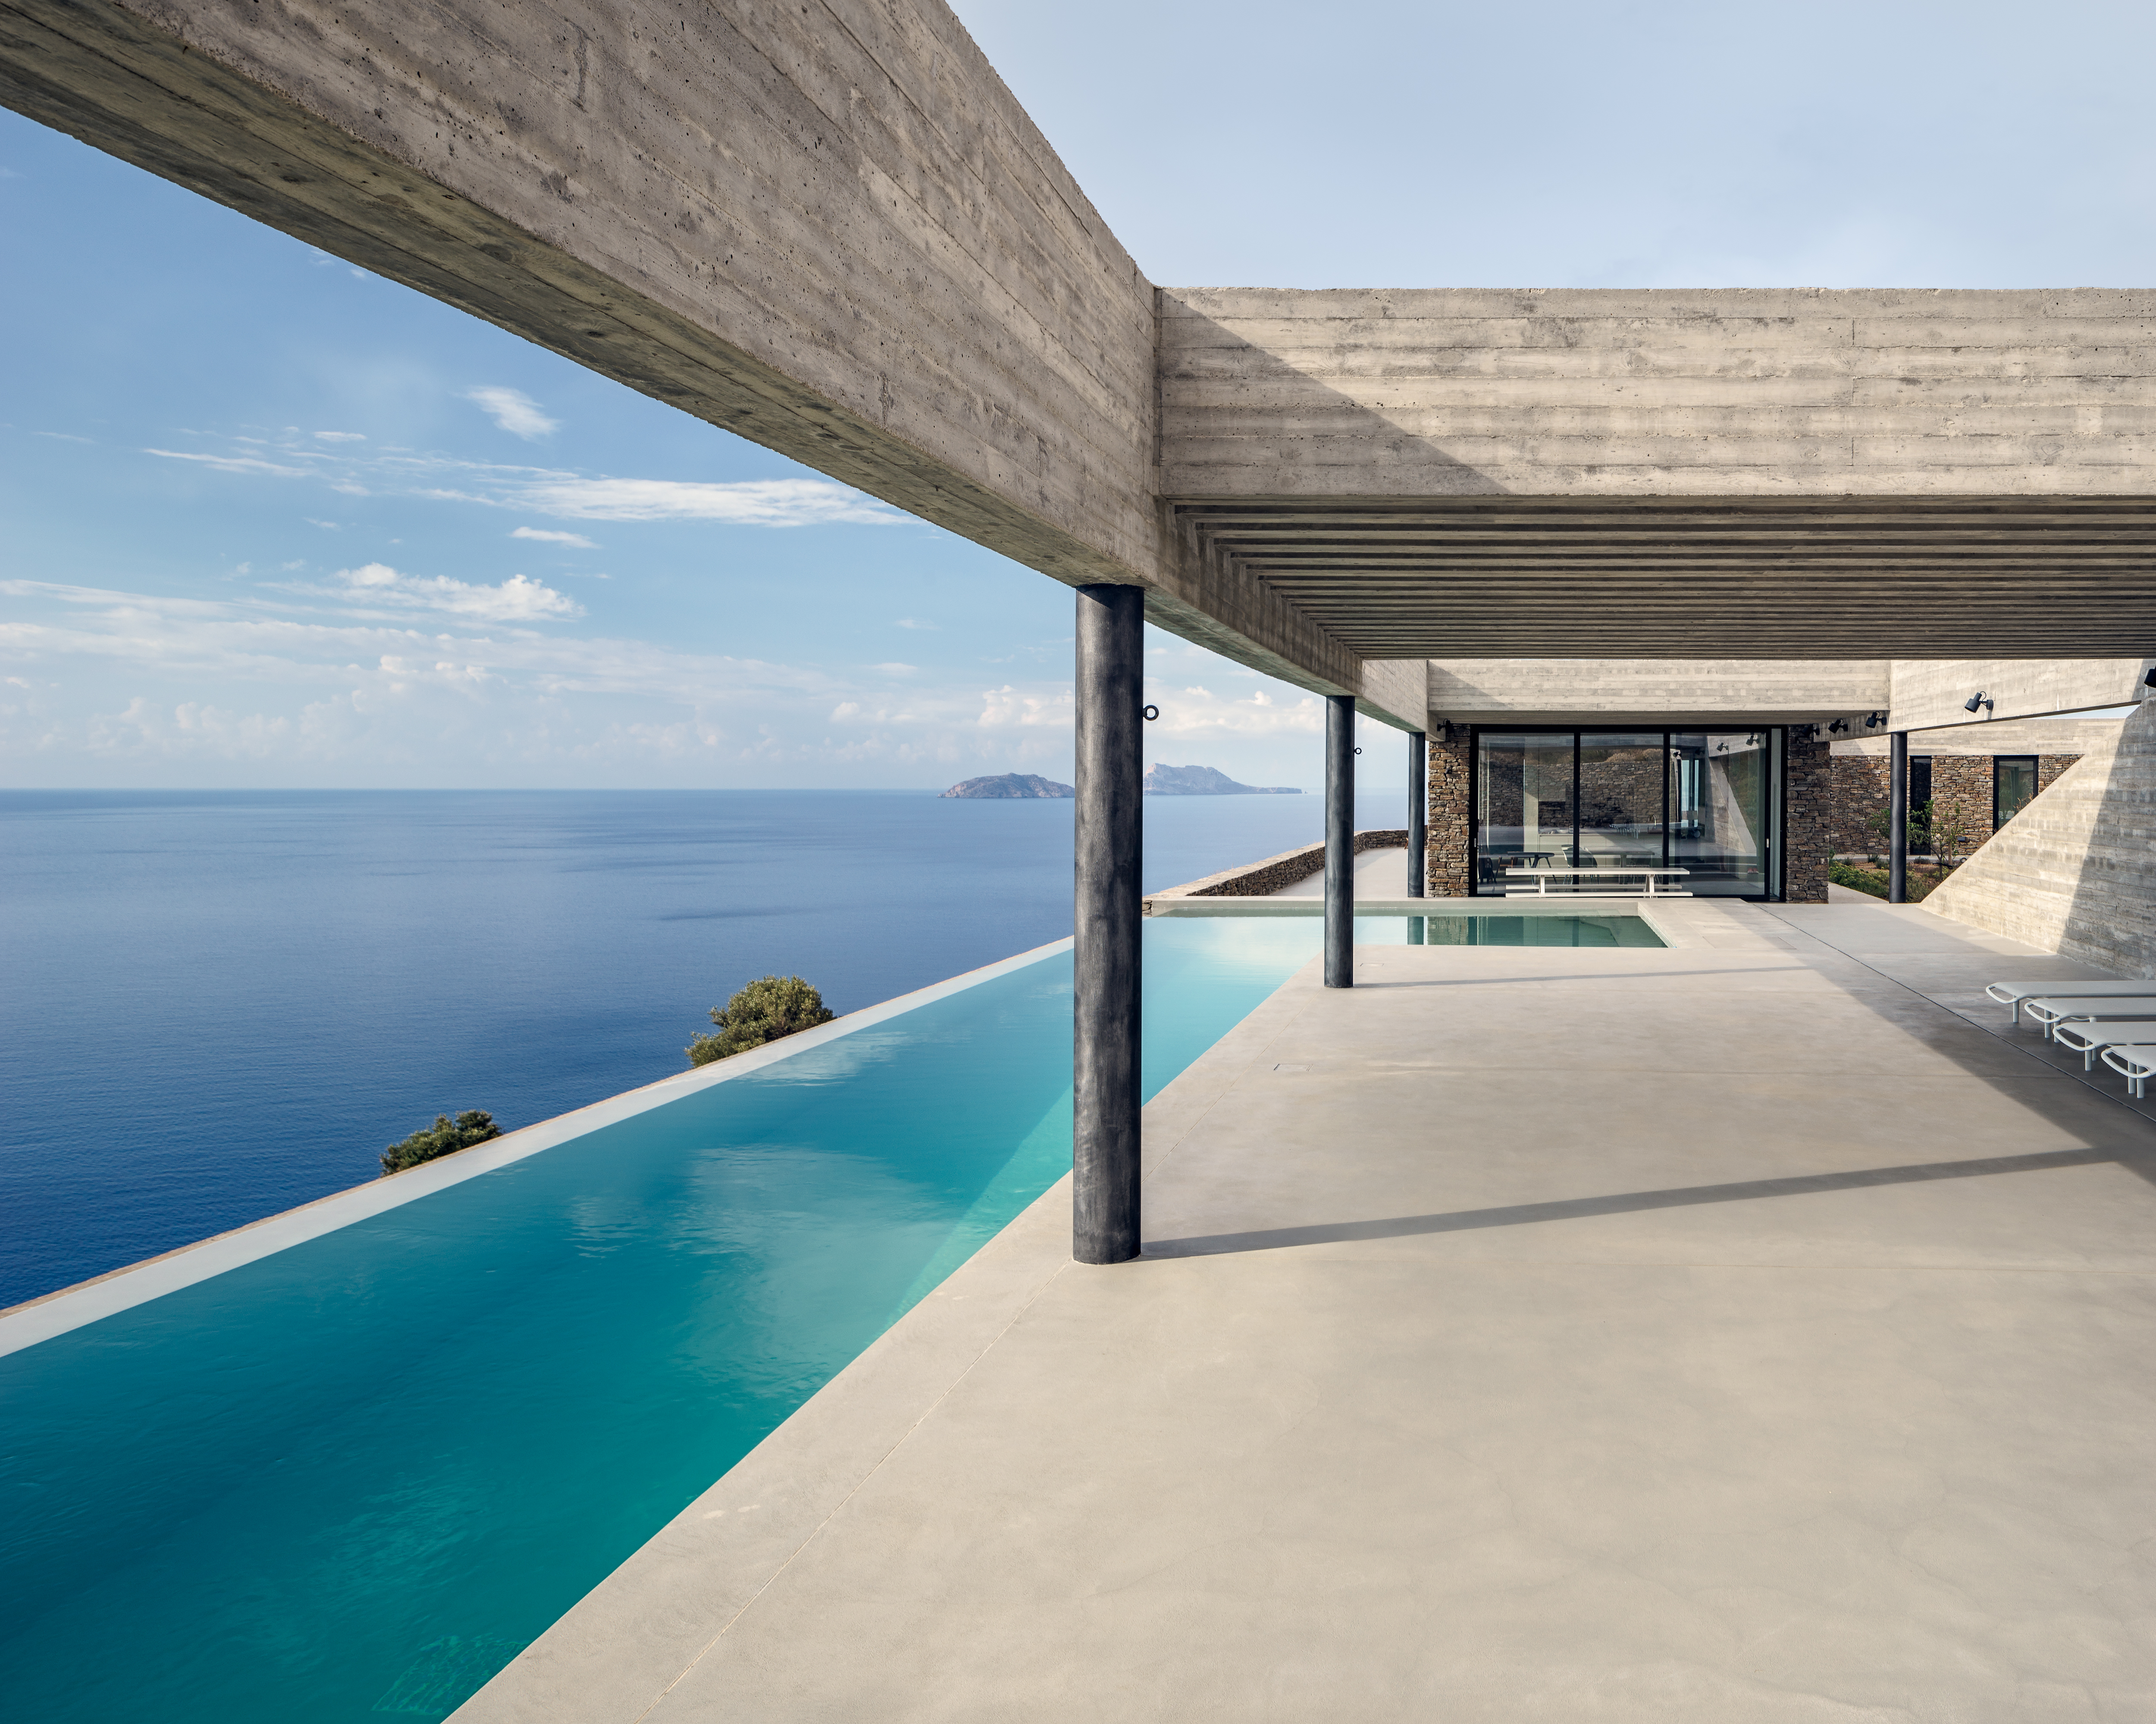 Concrete portico with pool